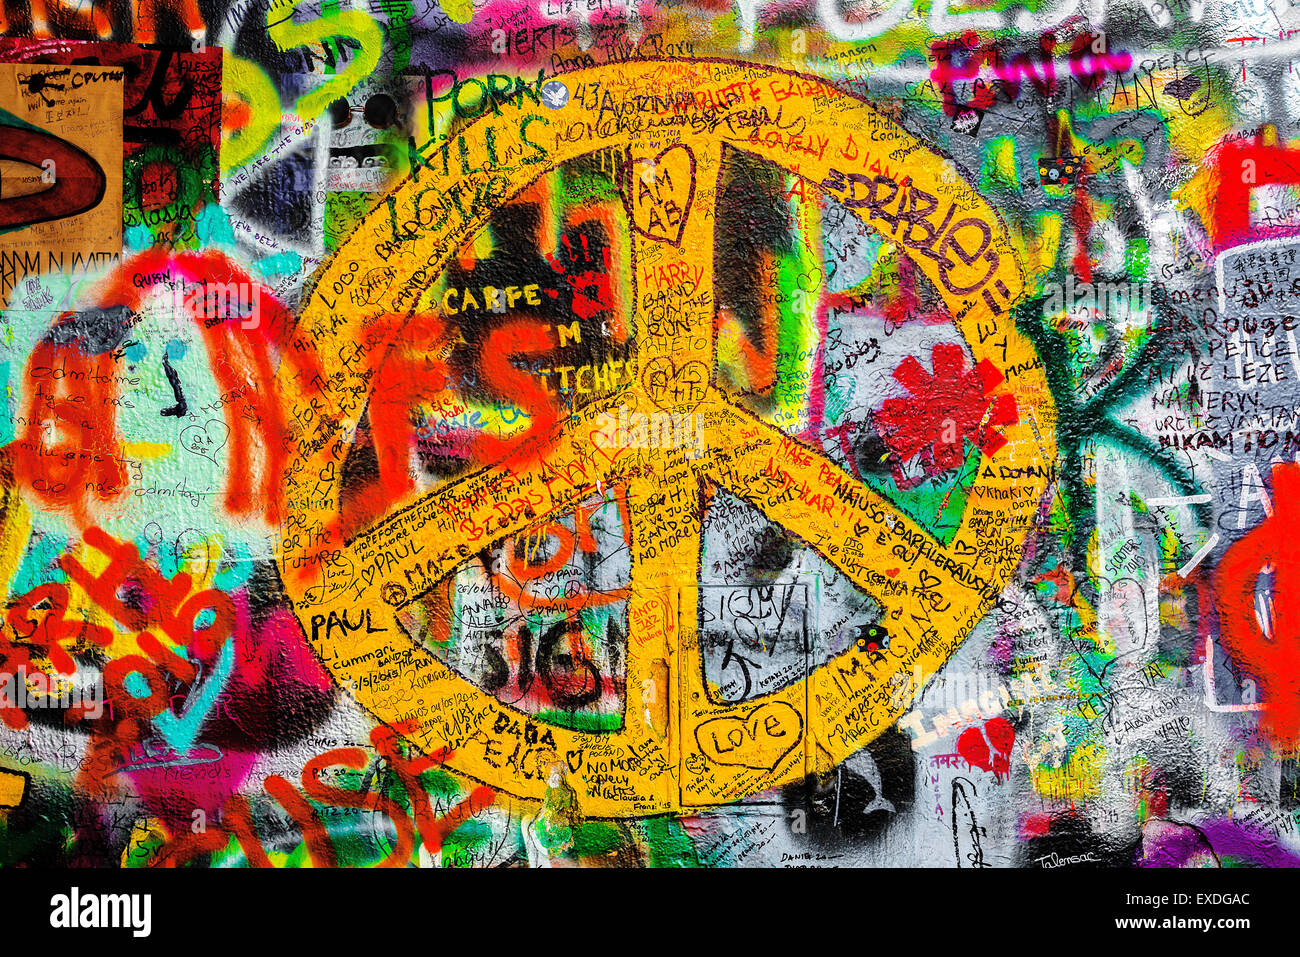 Prague czech republic may 21 2015 peace sign on famous john prague czech republic may 21 2015 peace sign on famous john lennon wall on kampa island in prague filled with beatles inspi buycottarizona